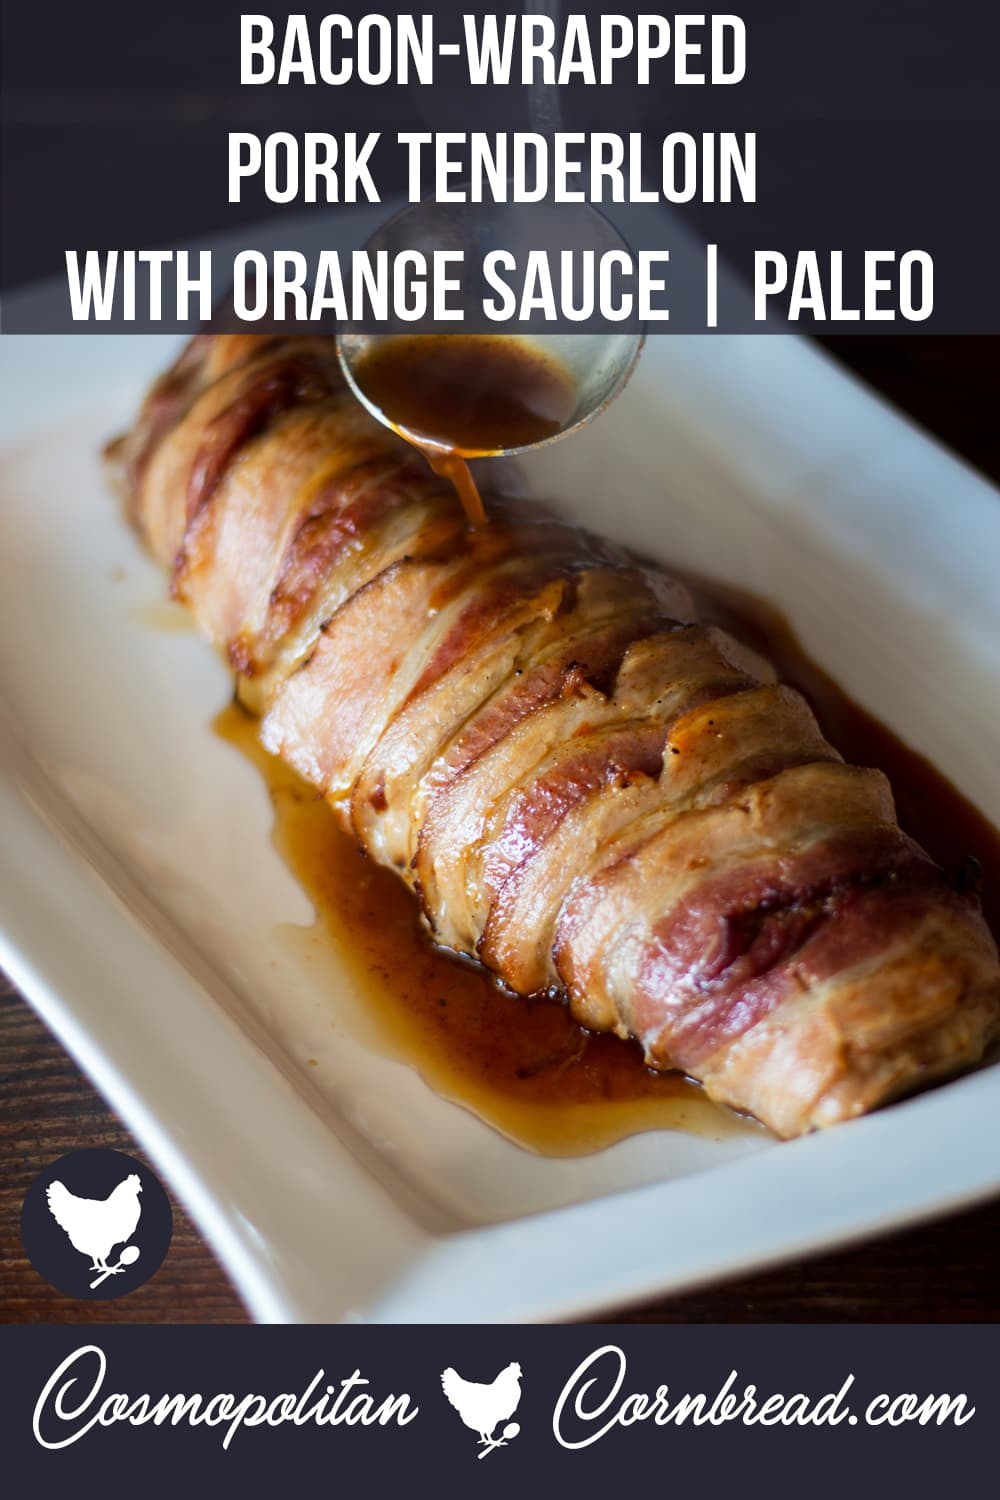 Beautiful pork tenderloin, wrapped in bacon, roasted and finished with a spiced orange sauce. This is almost sinful, it is so good! Get this paleo friendly recipe from Cosmopolitan Cornbread.